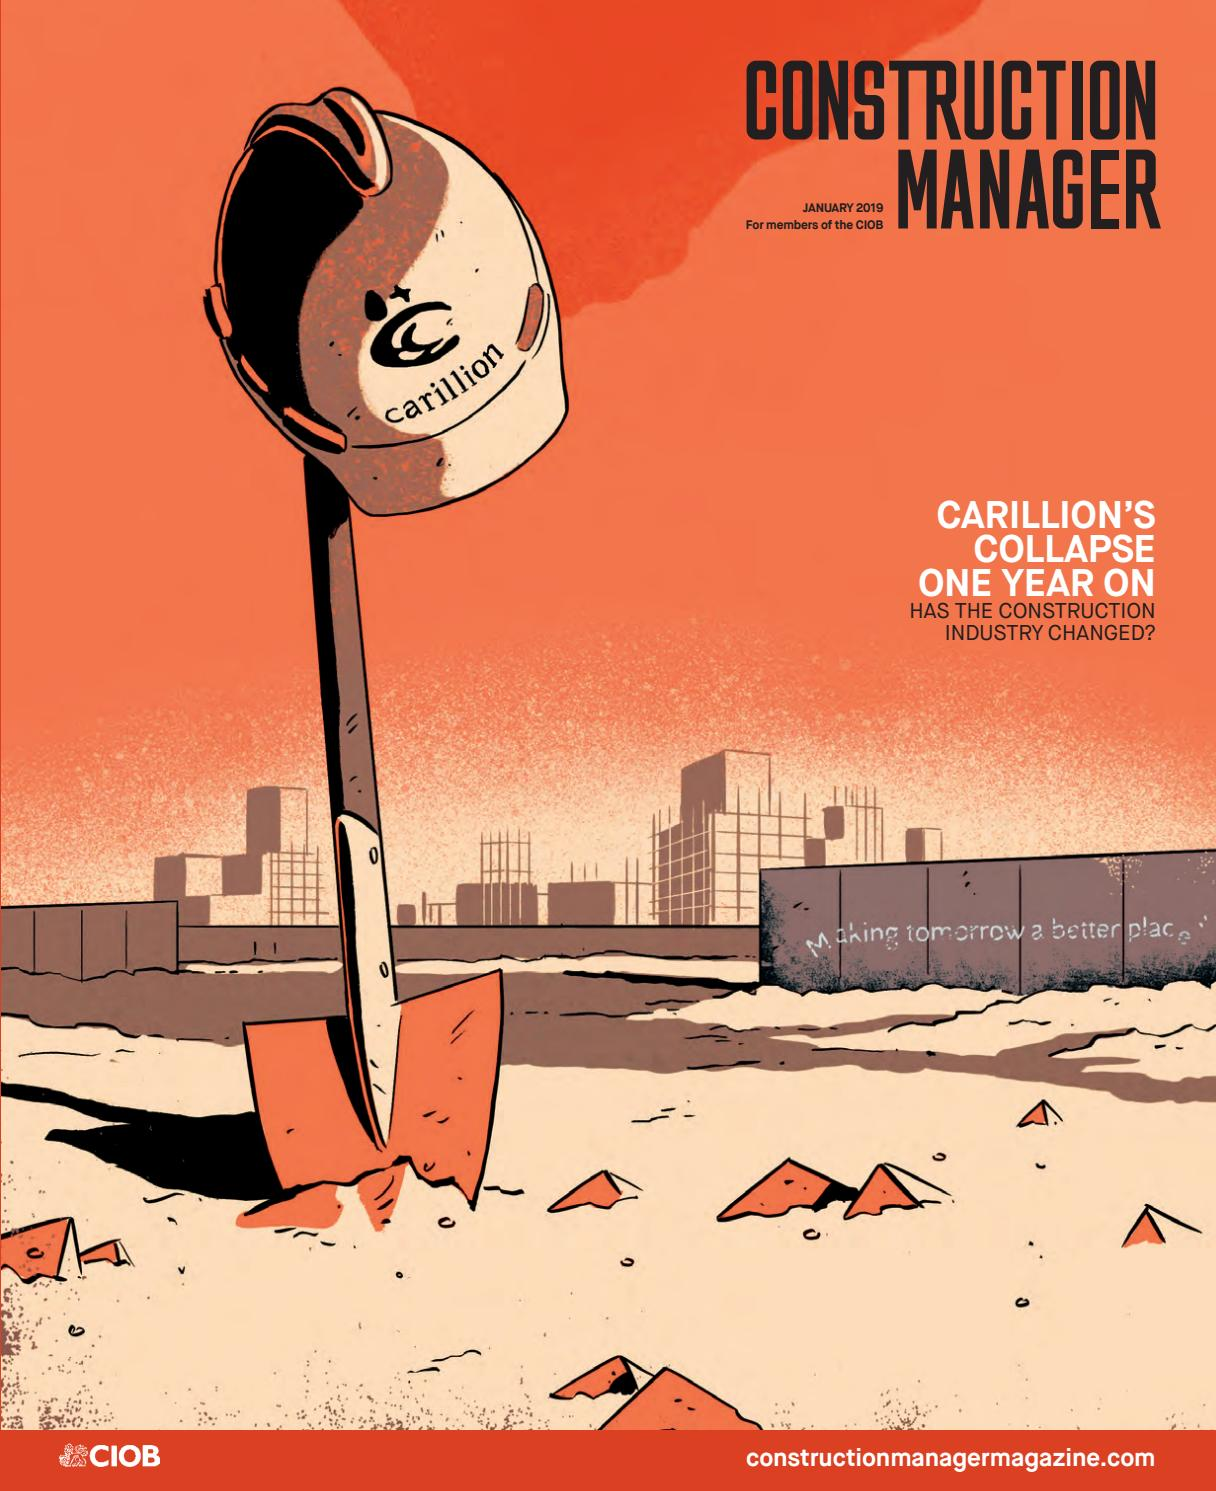 Construction Manager January 2019 by Construction Manager